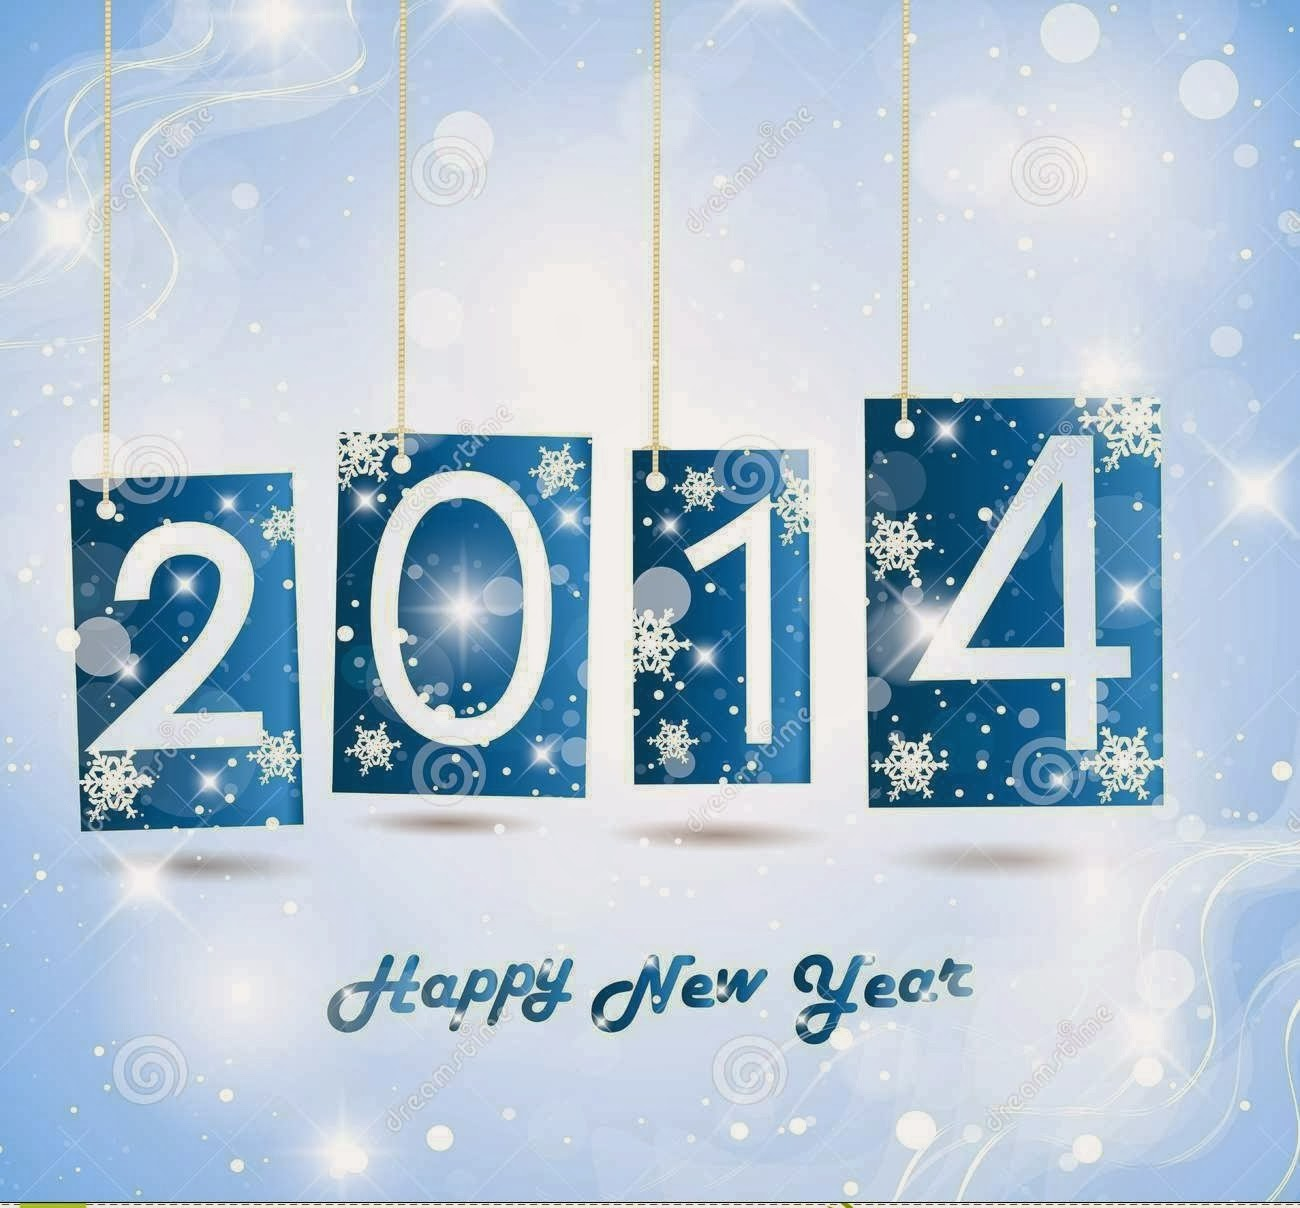 2014 Happy New Year Greetings.11 Wish For Happy New Year Greetings 2014